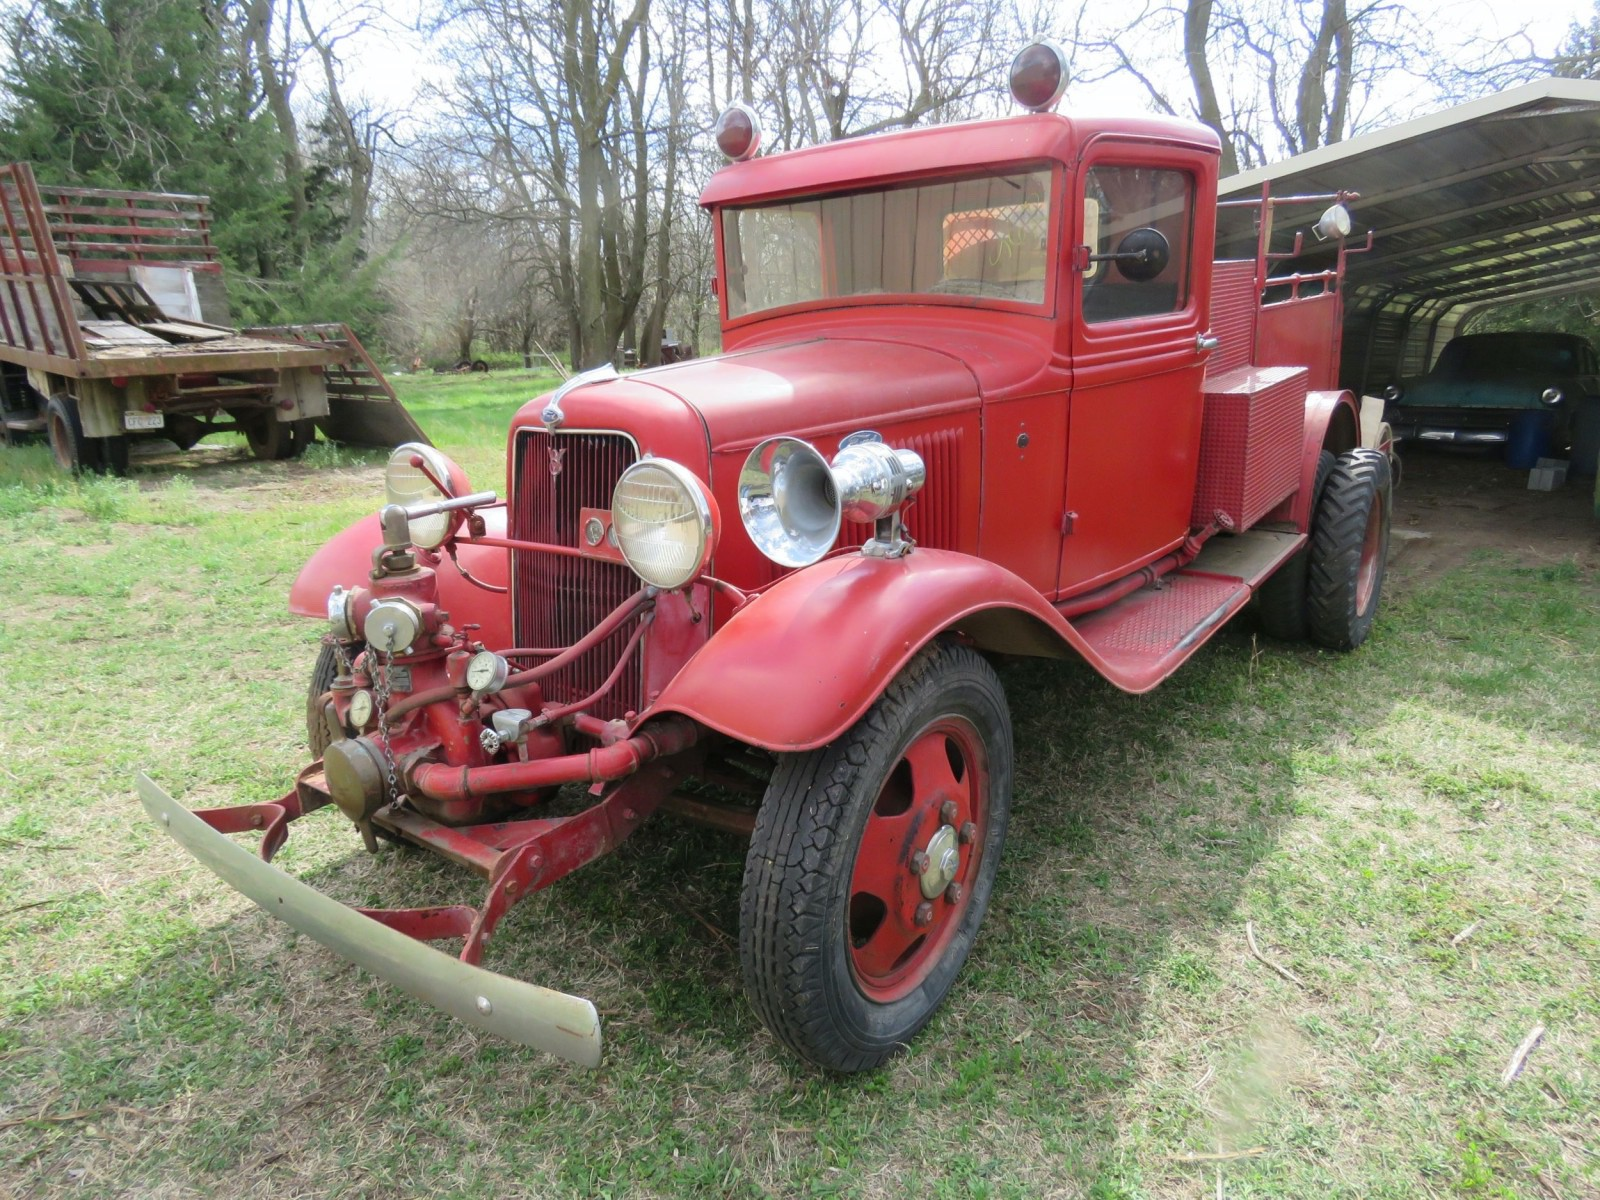 bob-regehr-collection-1934-ford-firetruck-1